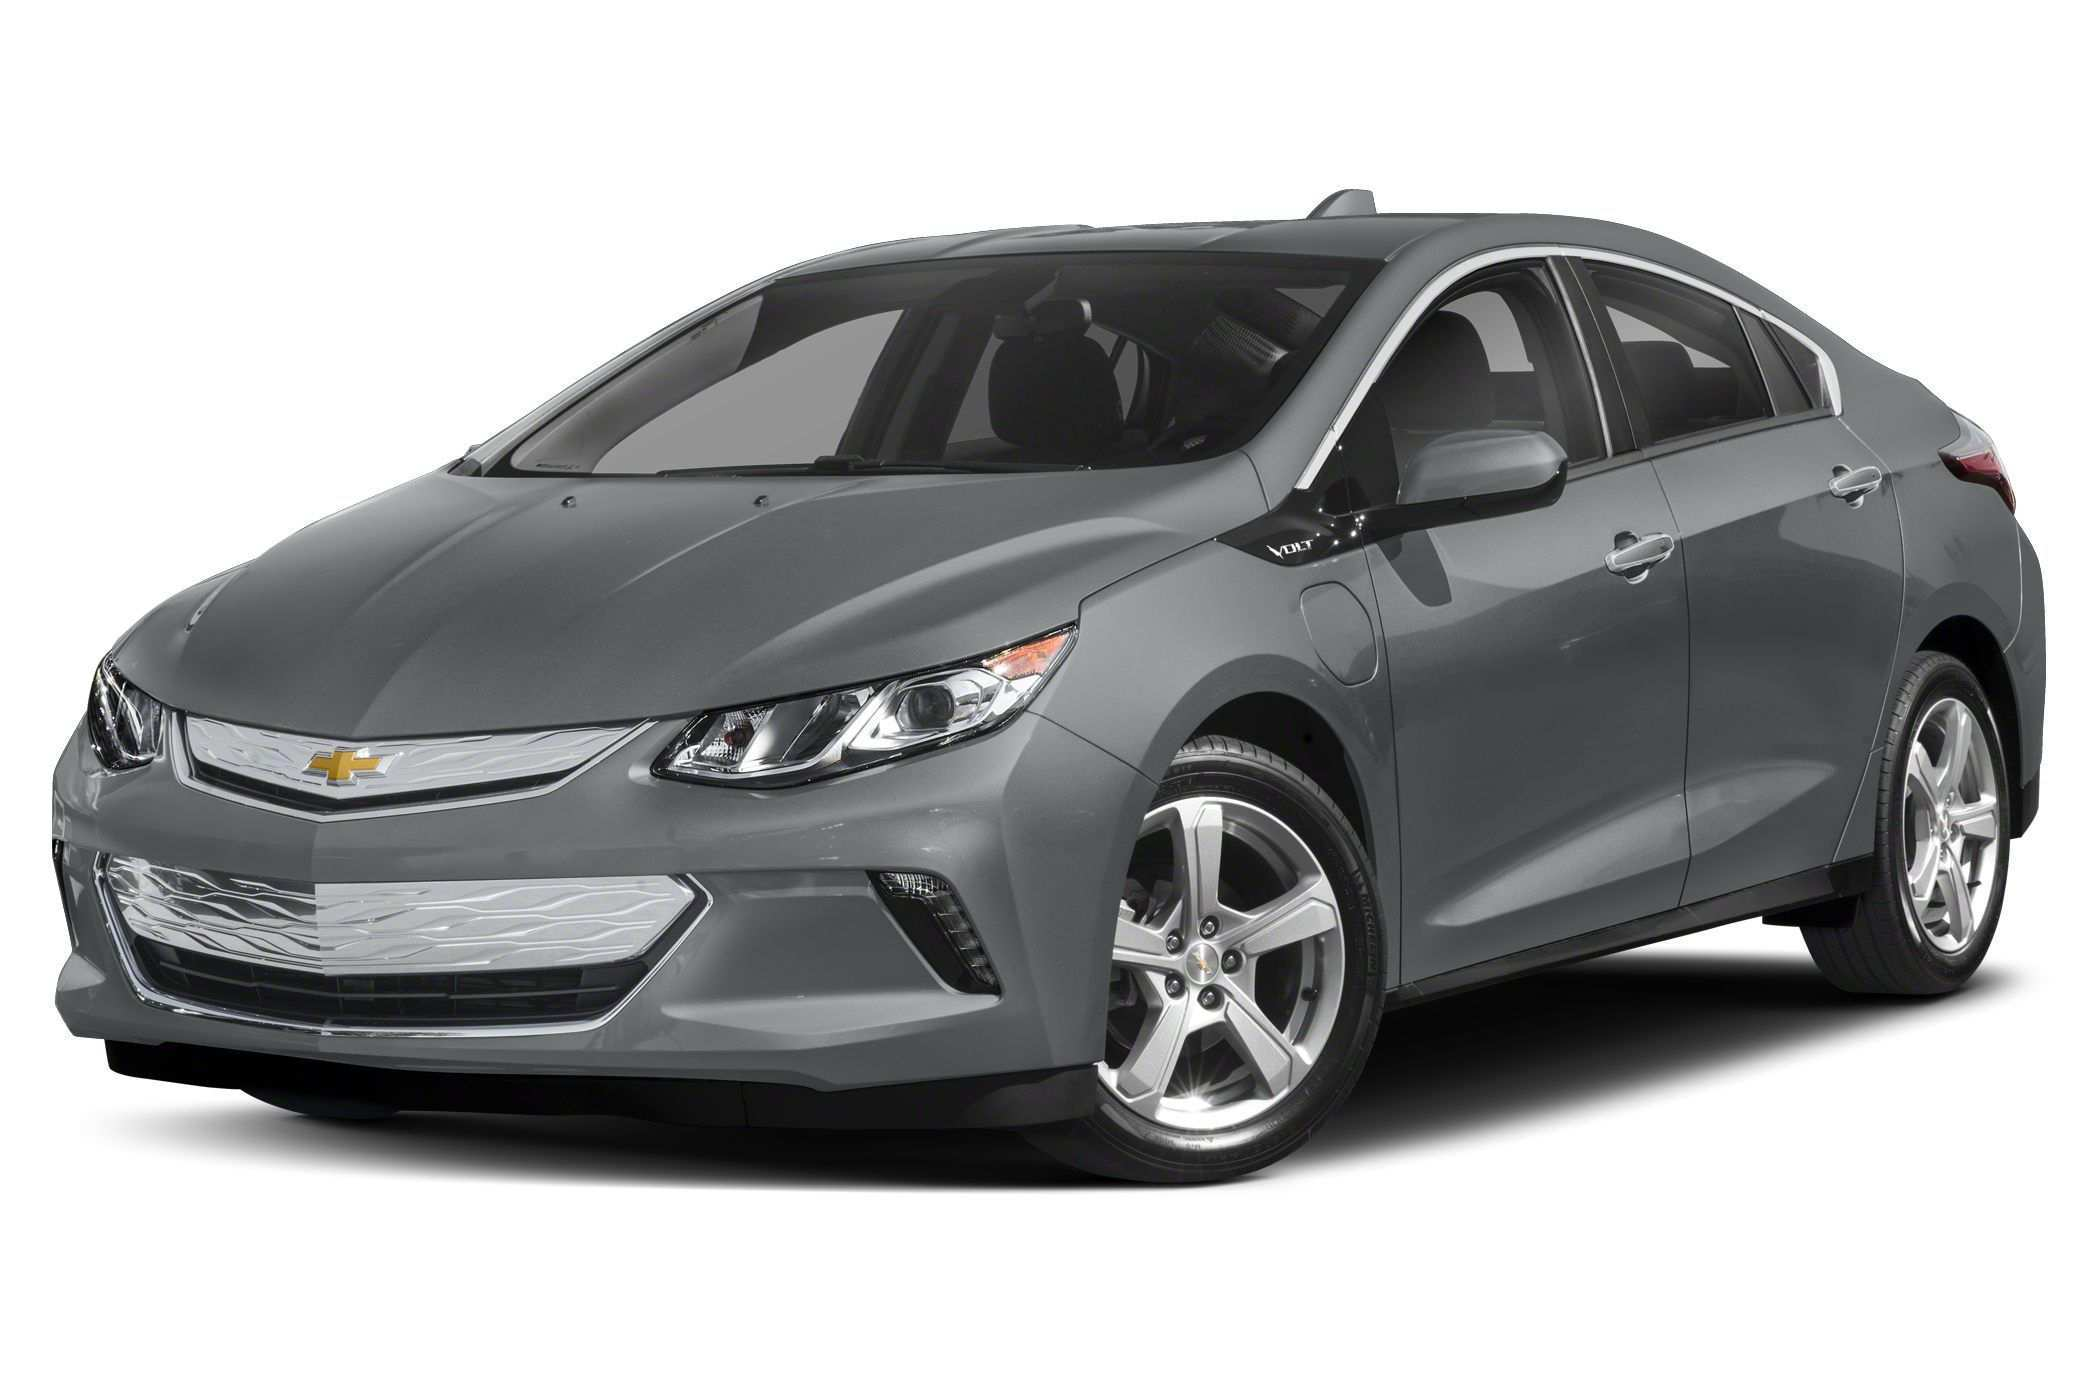 71 All New 2020 Chevy Volt History